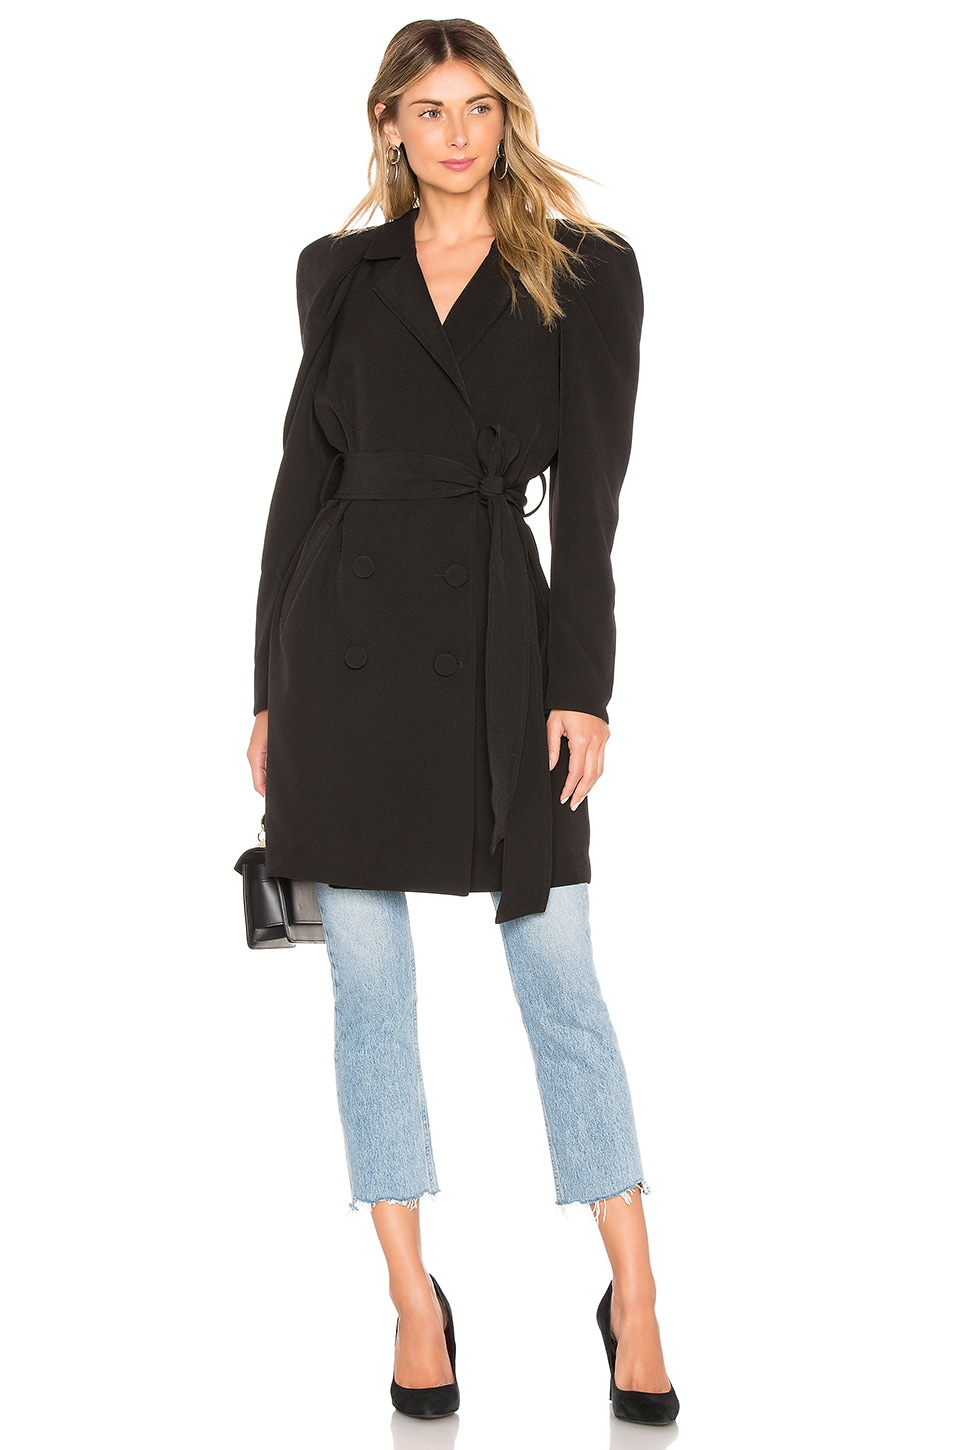 L'Academie The Tracey Coat in Black